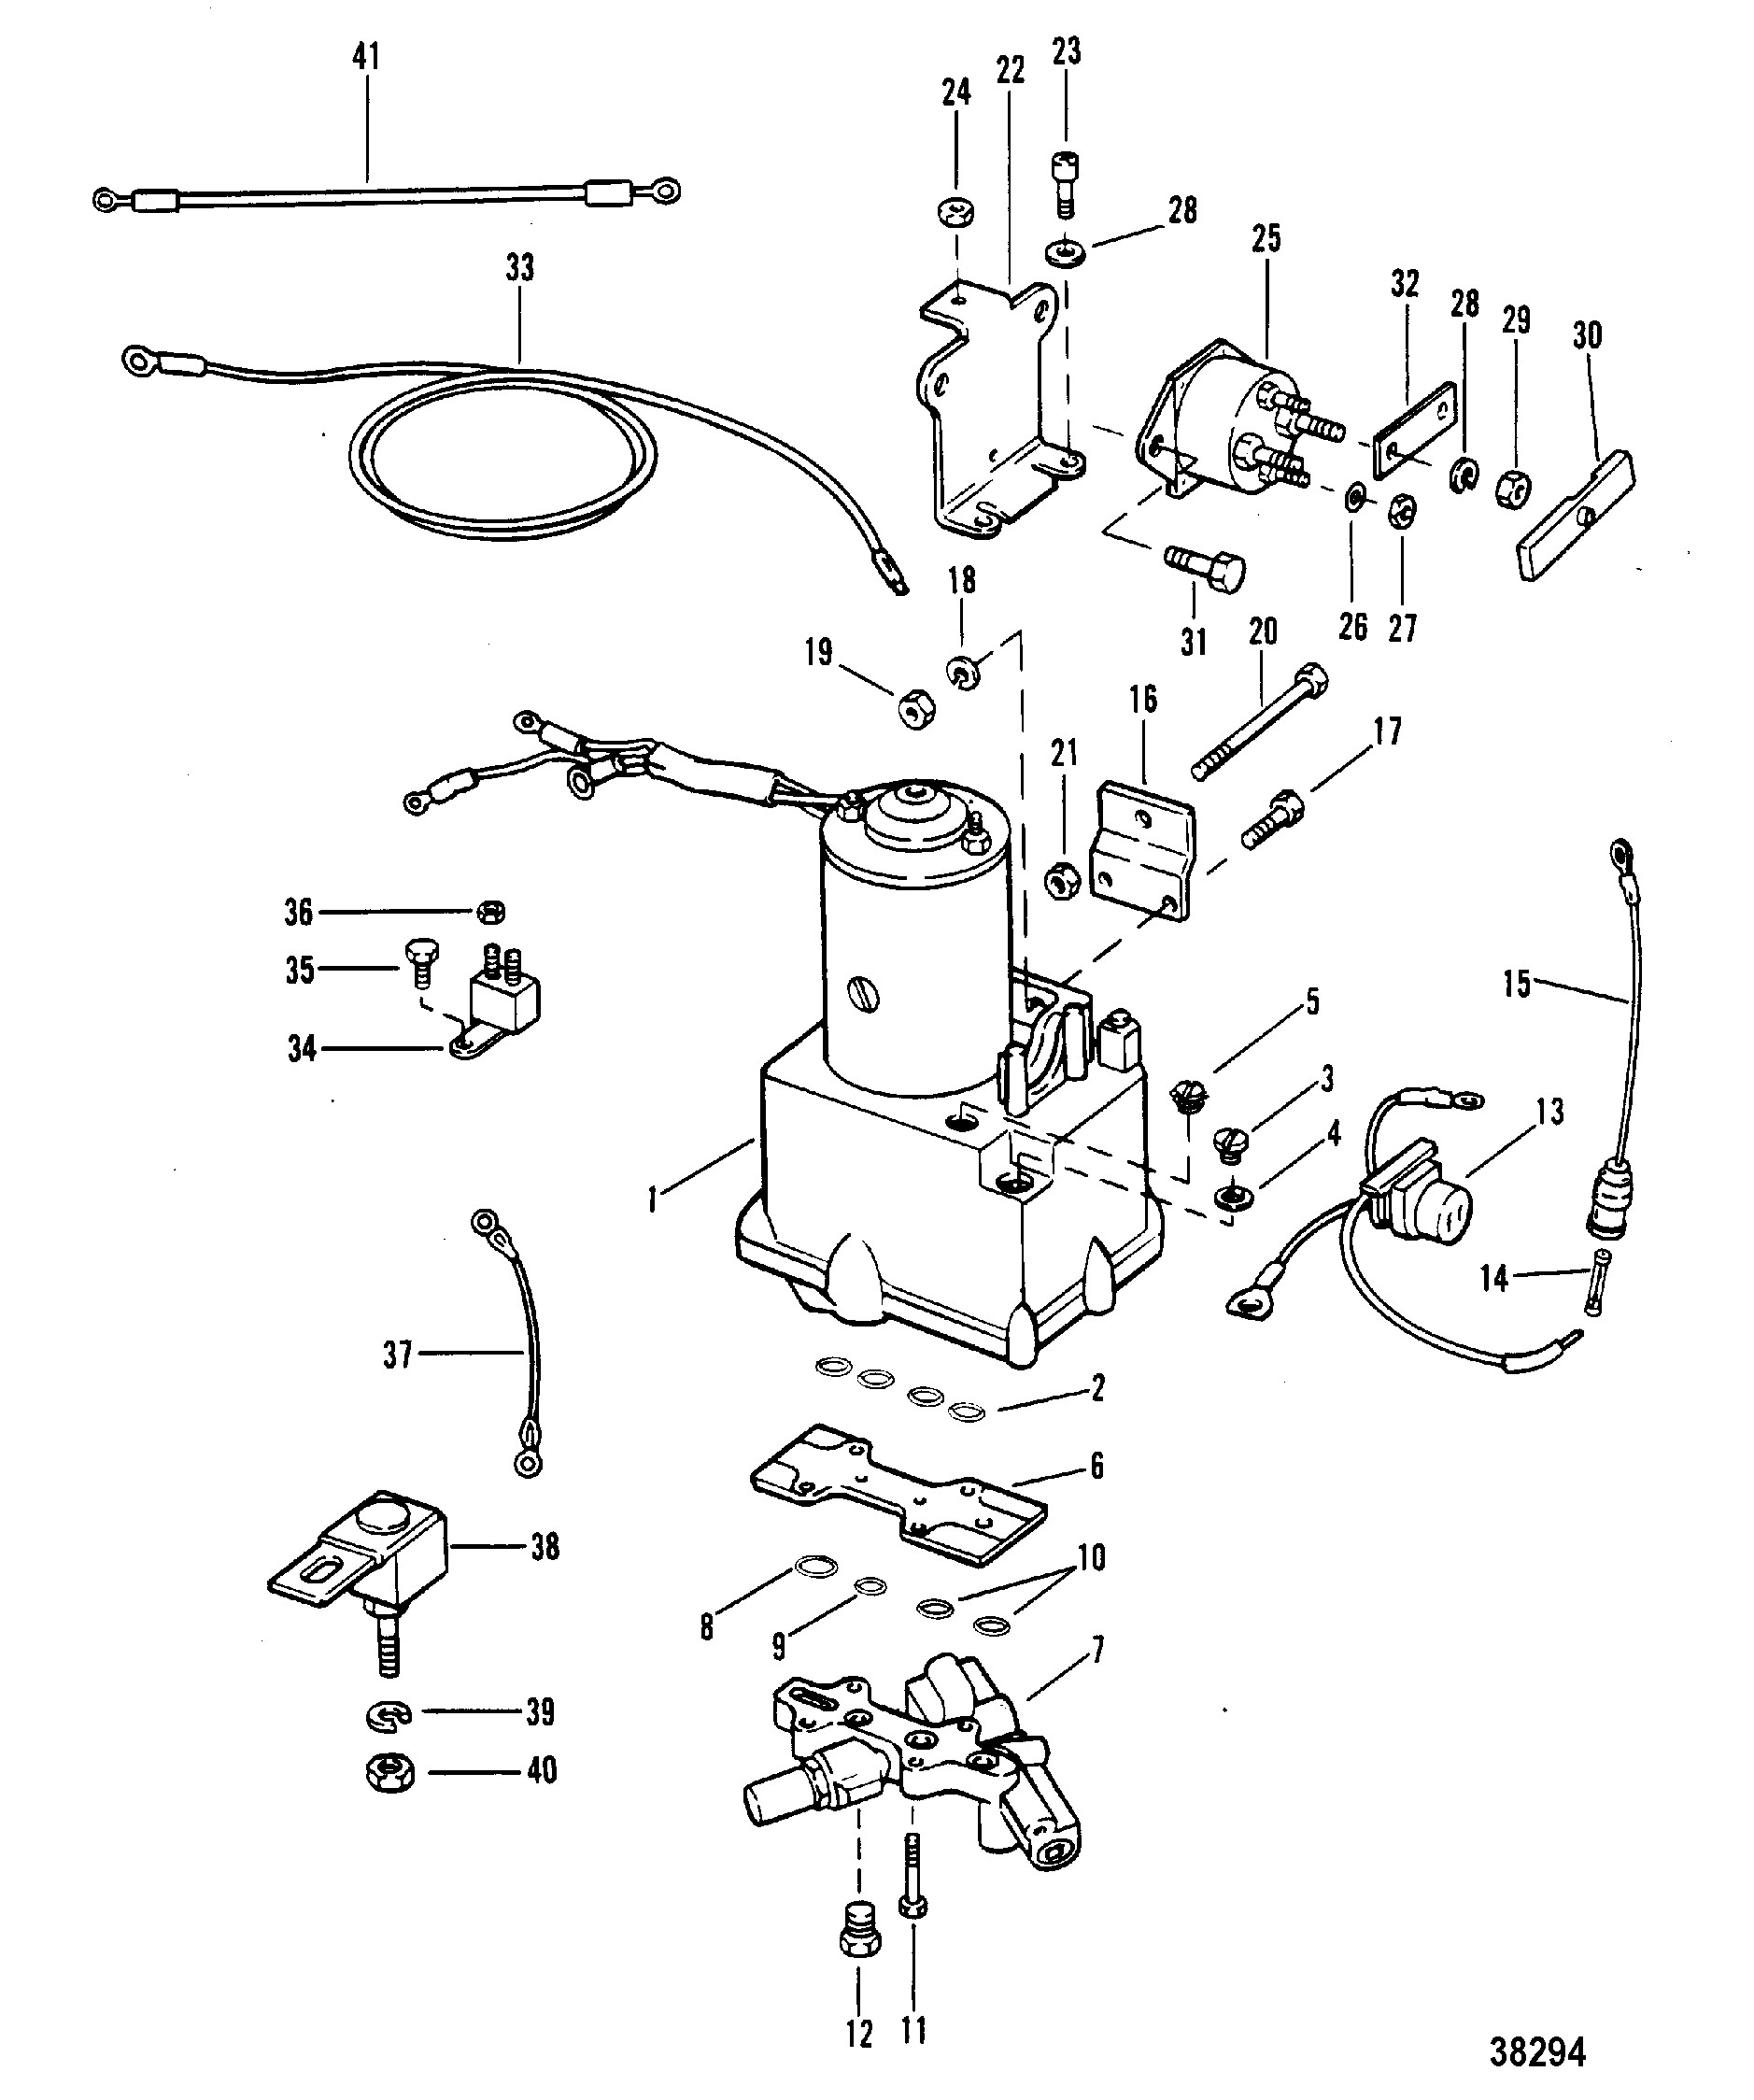 Wiring Diagram For Boat Trim Solenoids Mercruiser Solenoid Unique Image Sourcecapecodcottagerentalus Mercury Mariner 50 4 Cyl Up